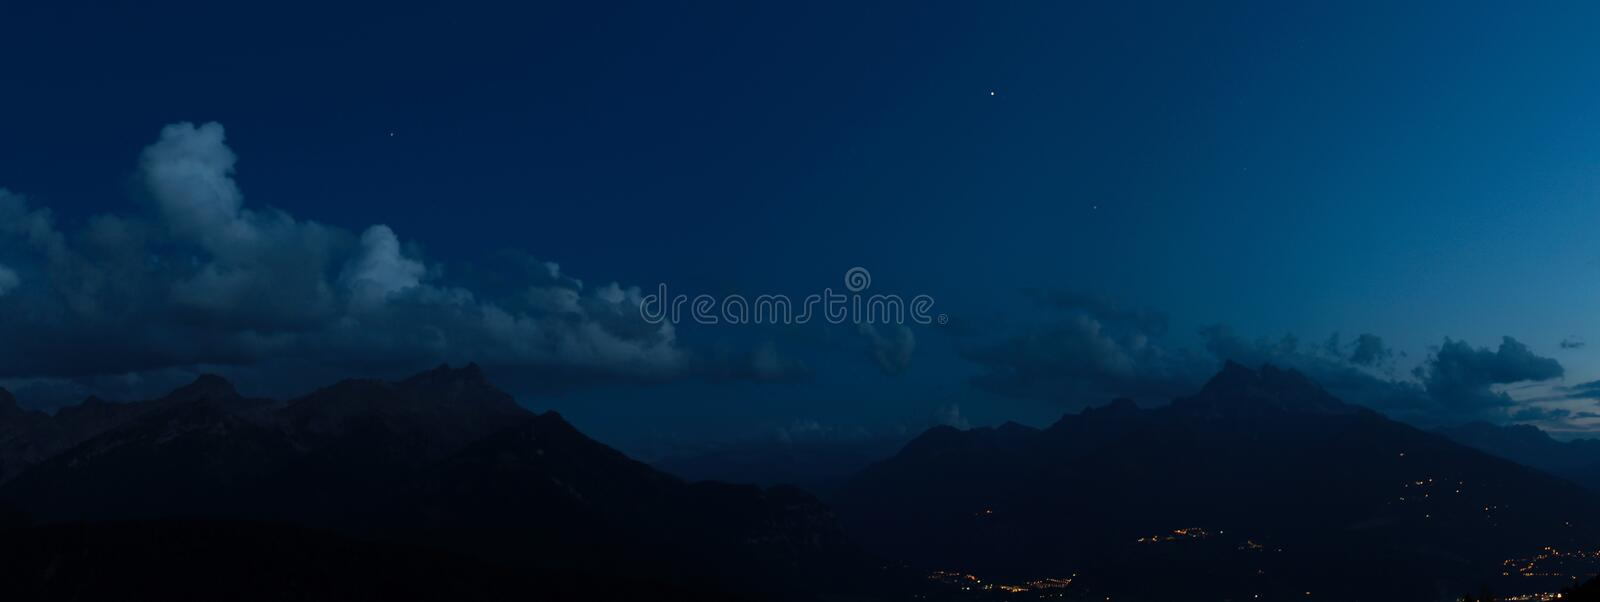 Mountains At Night. Nocturnal alpine landscape with mountains and clouds stock photos